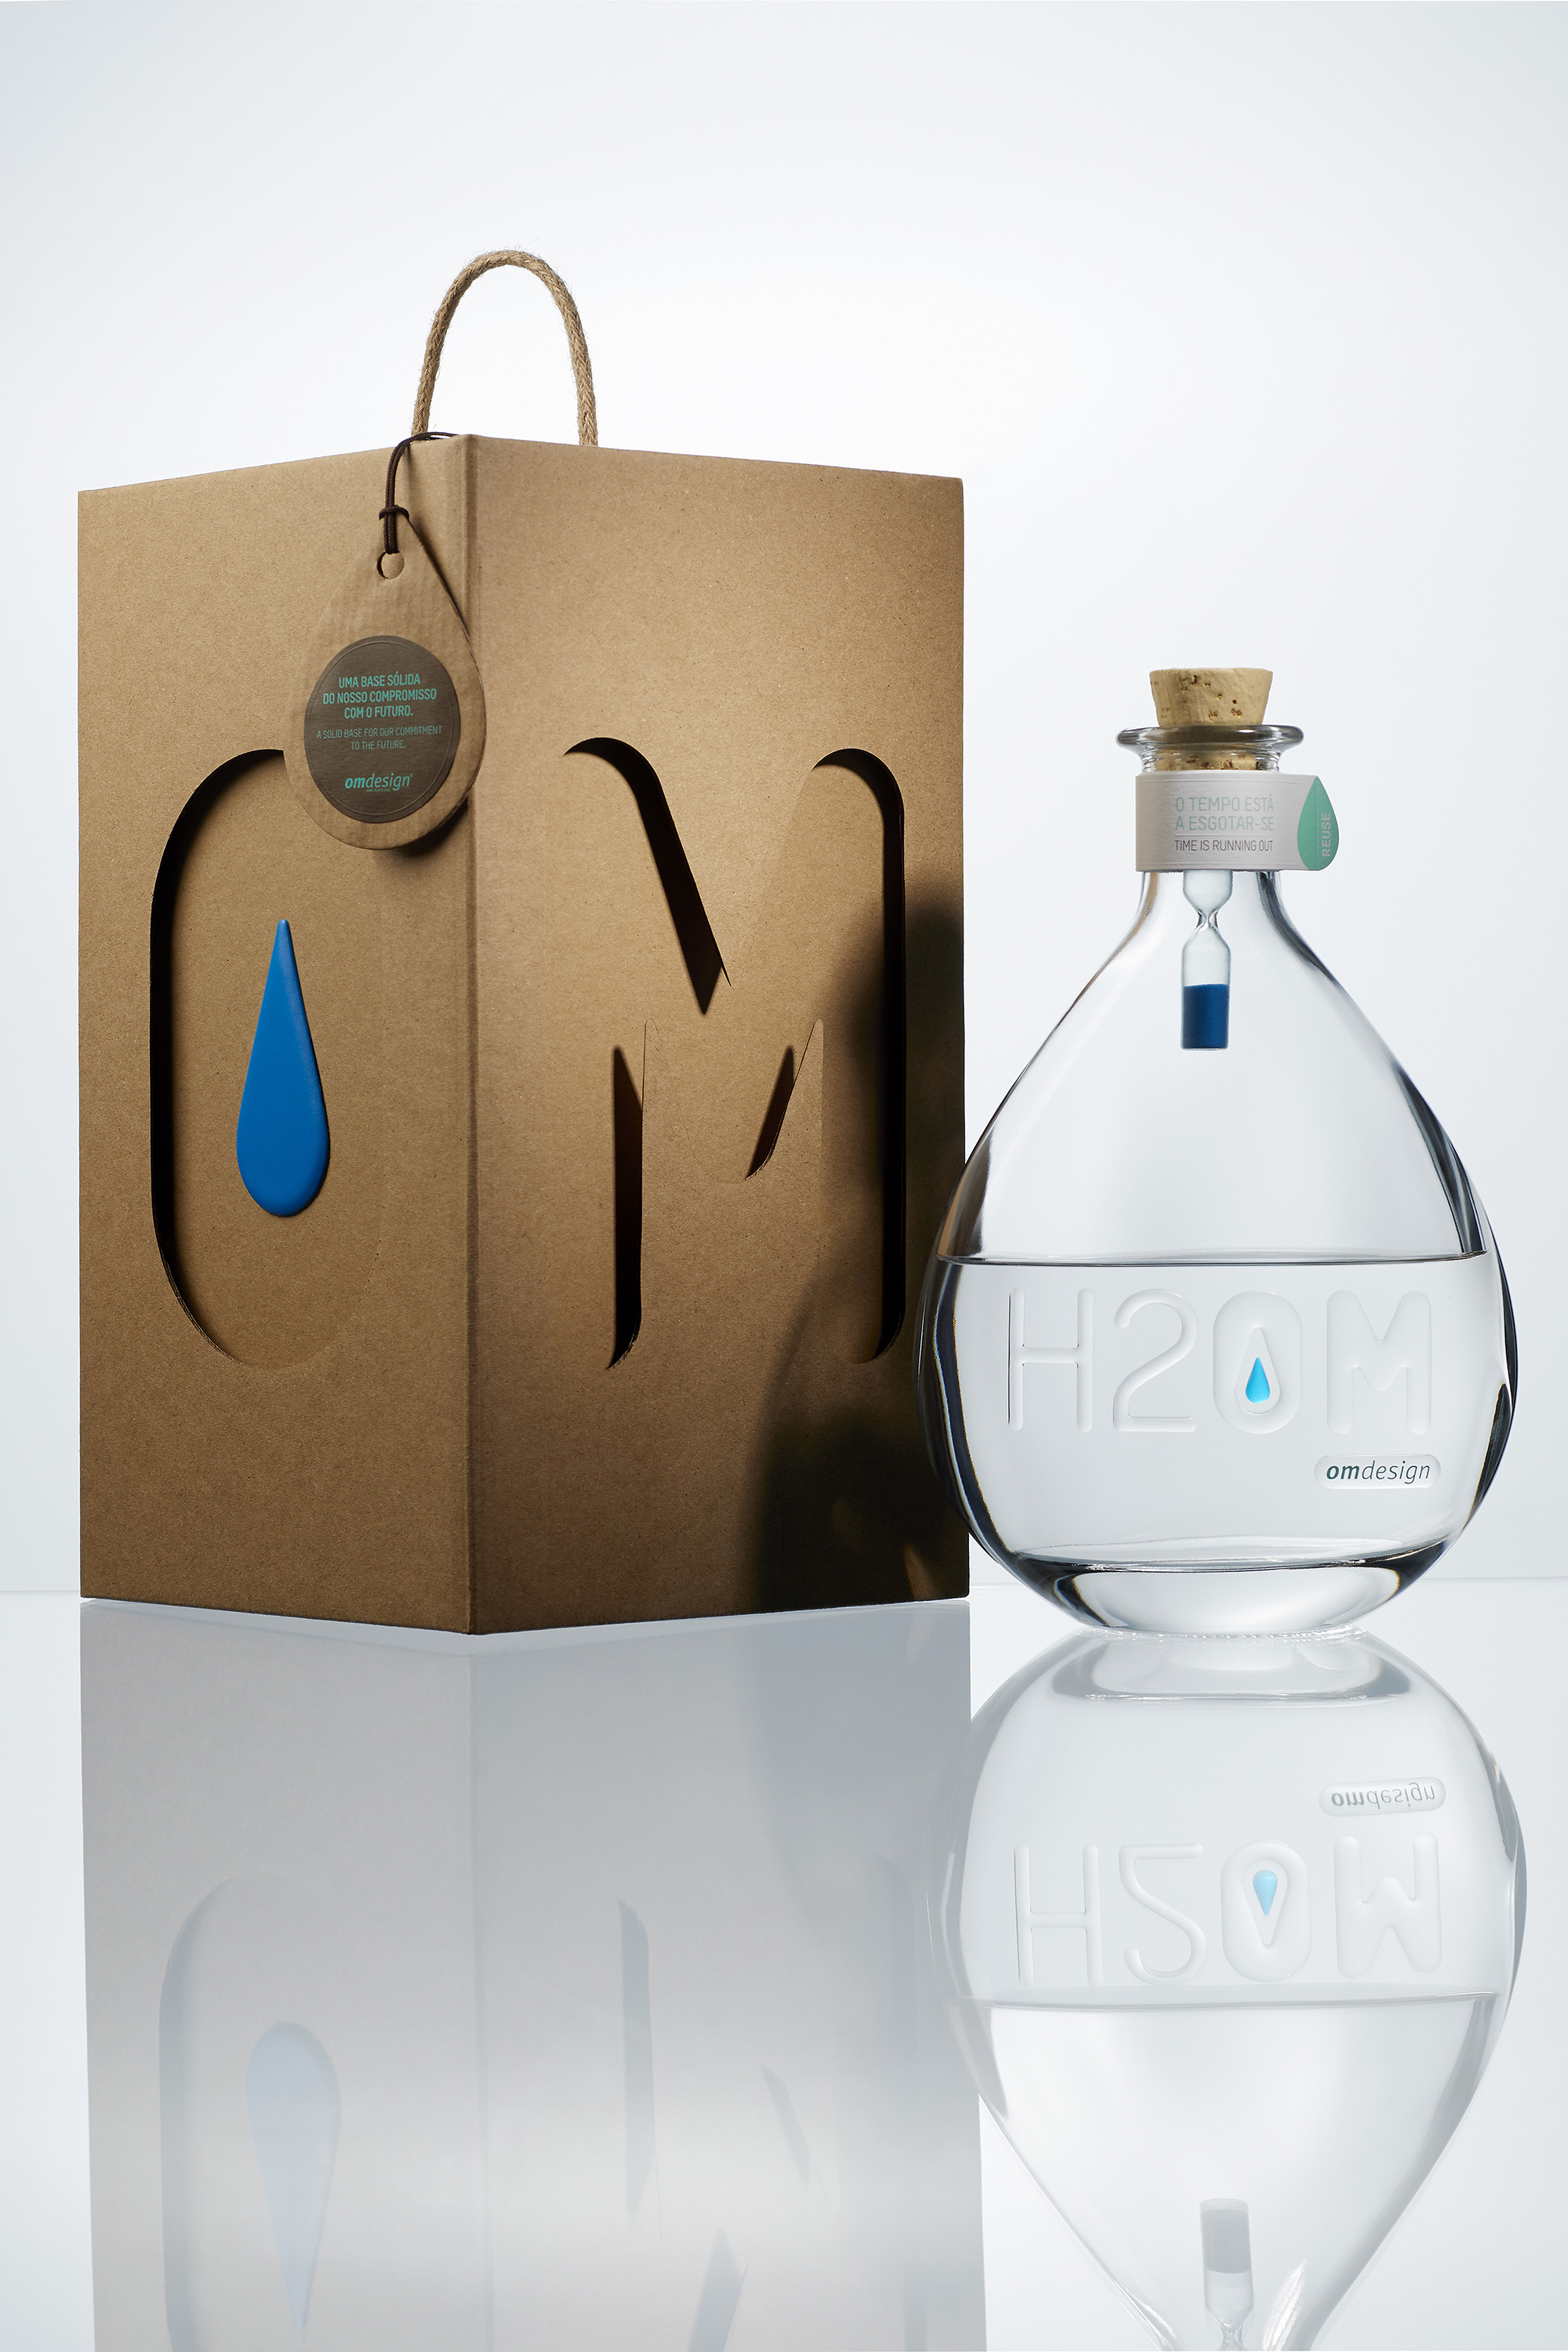 H2Om – To Use and Reuse This Packaging Without Limits